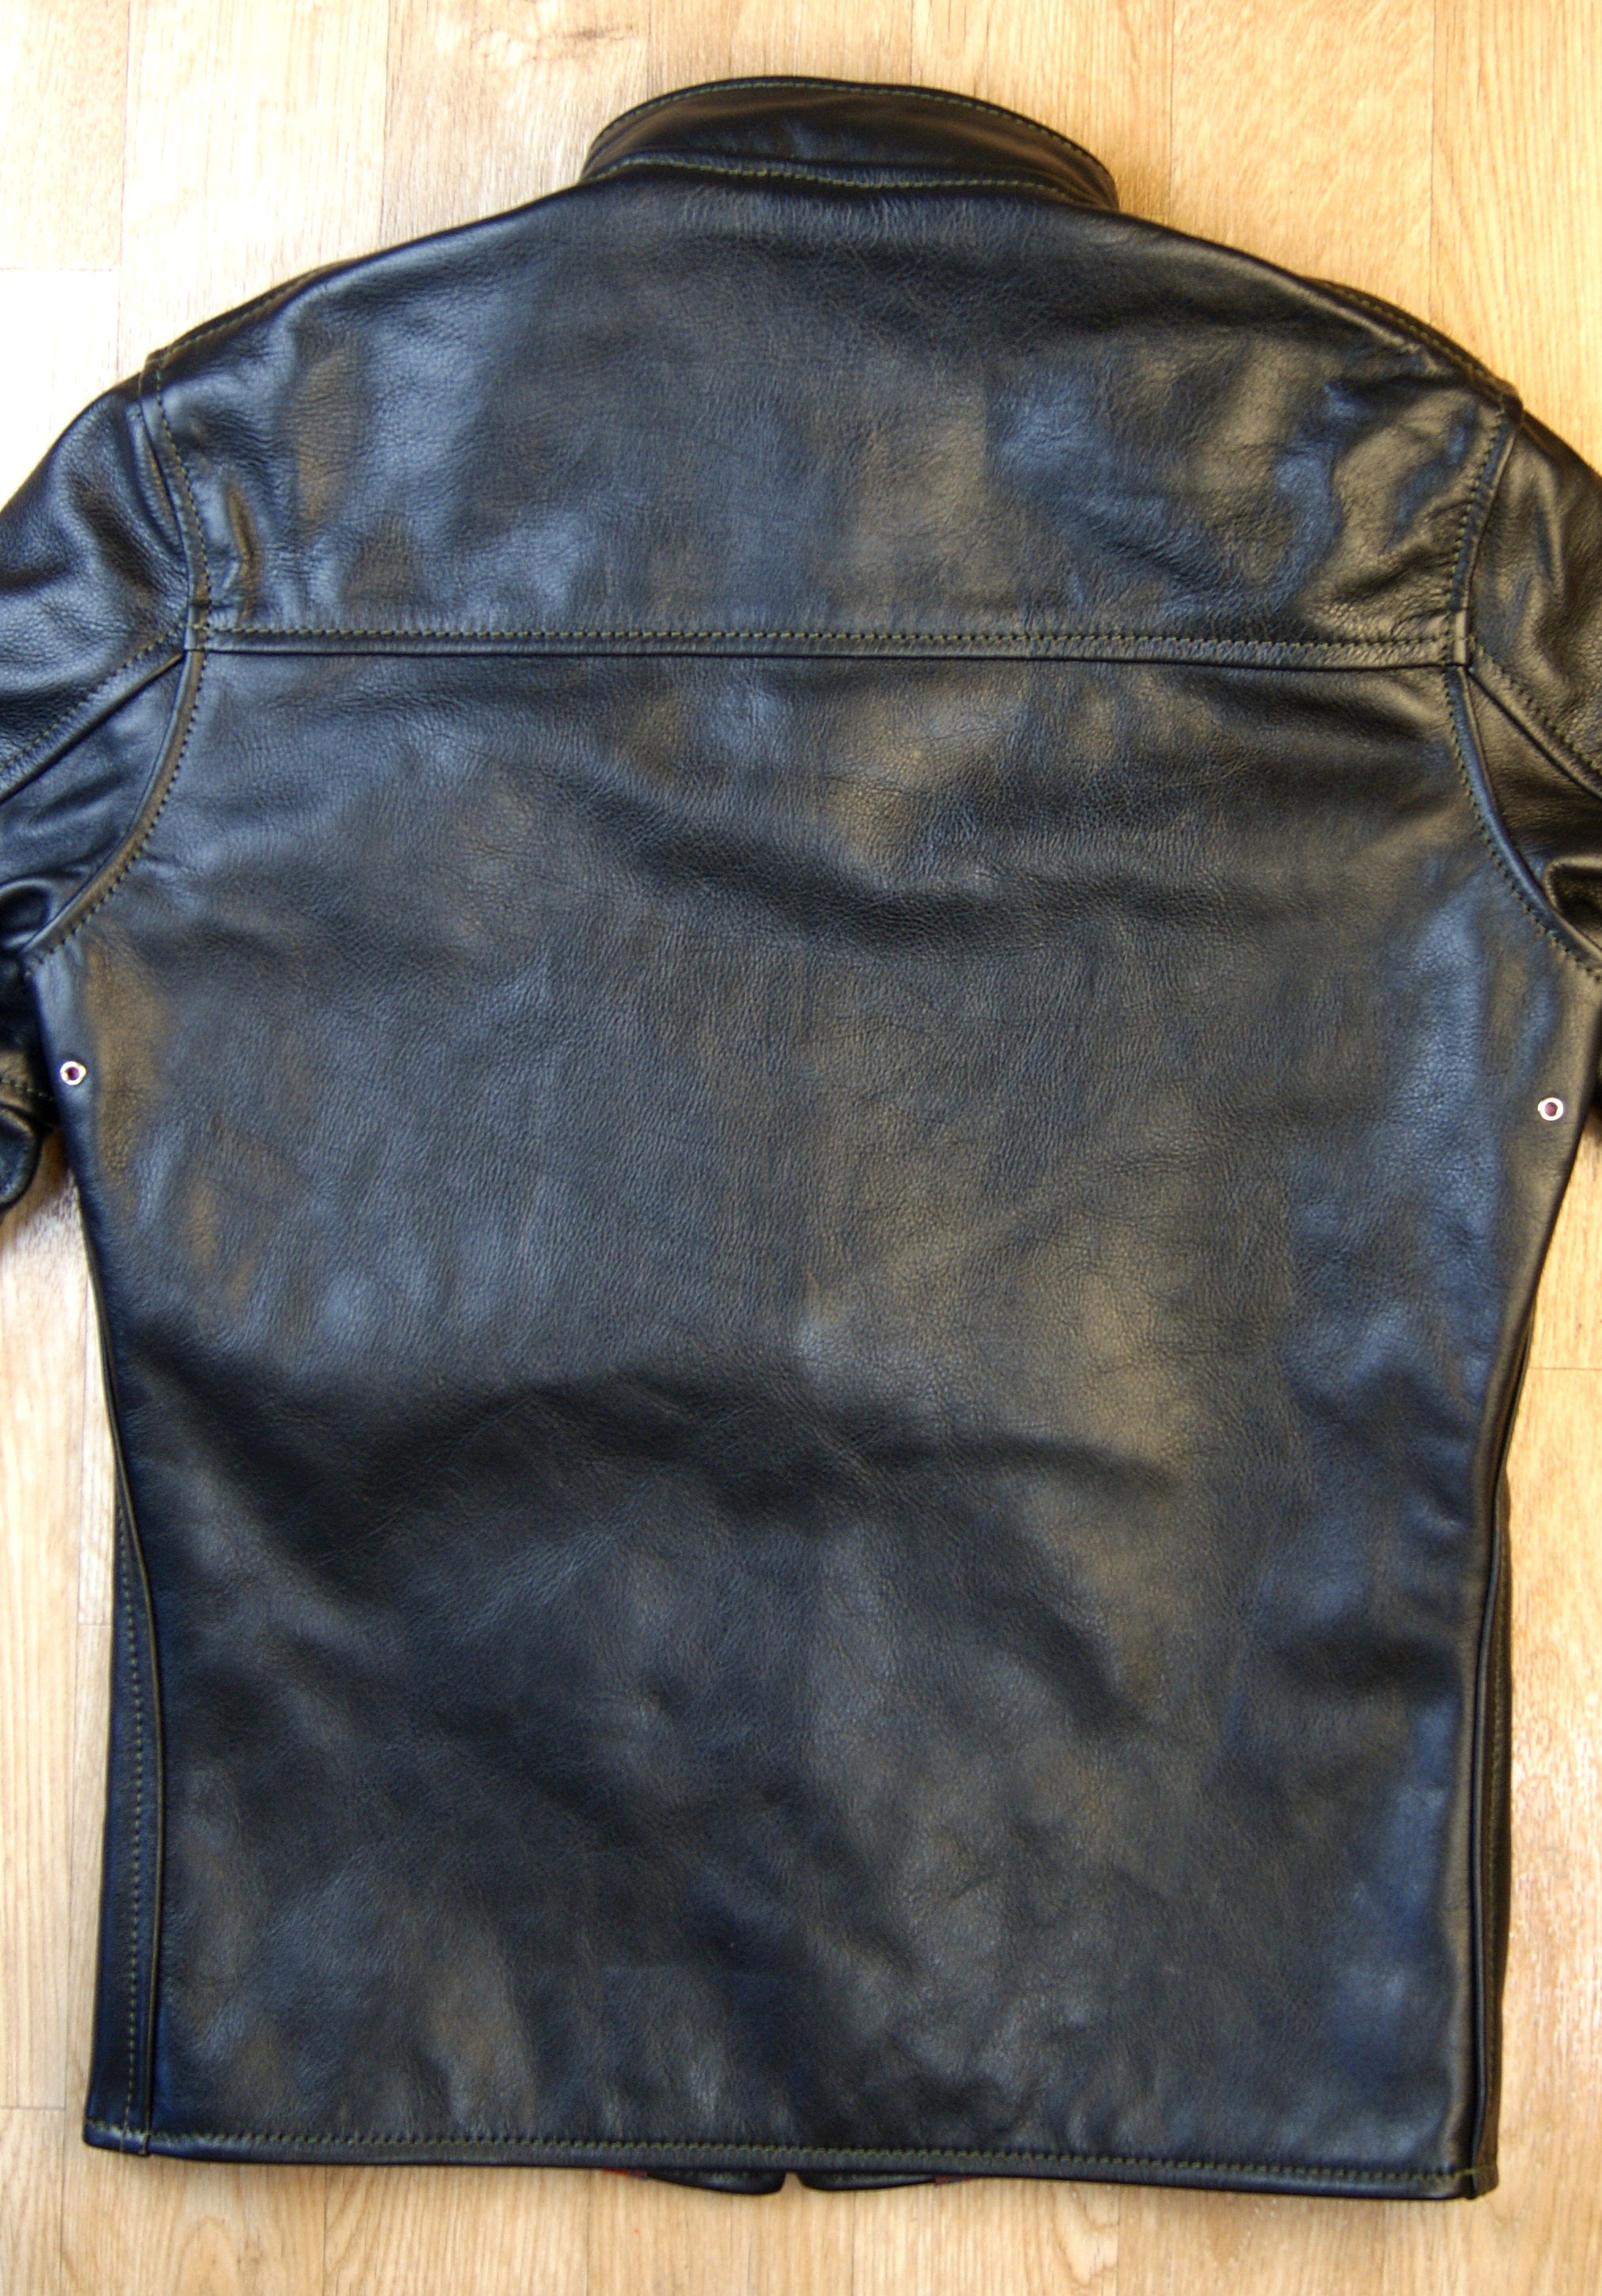 Aero Board Racer, size 36, Blackened Brown Vicenza Horsehide